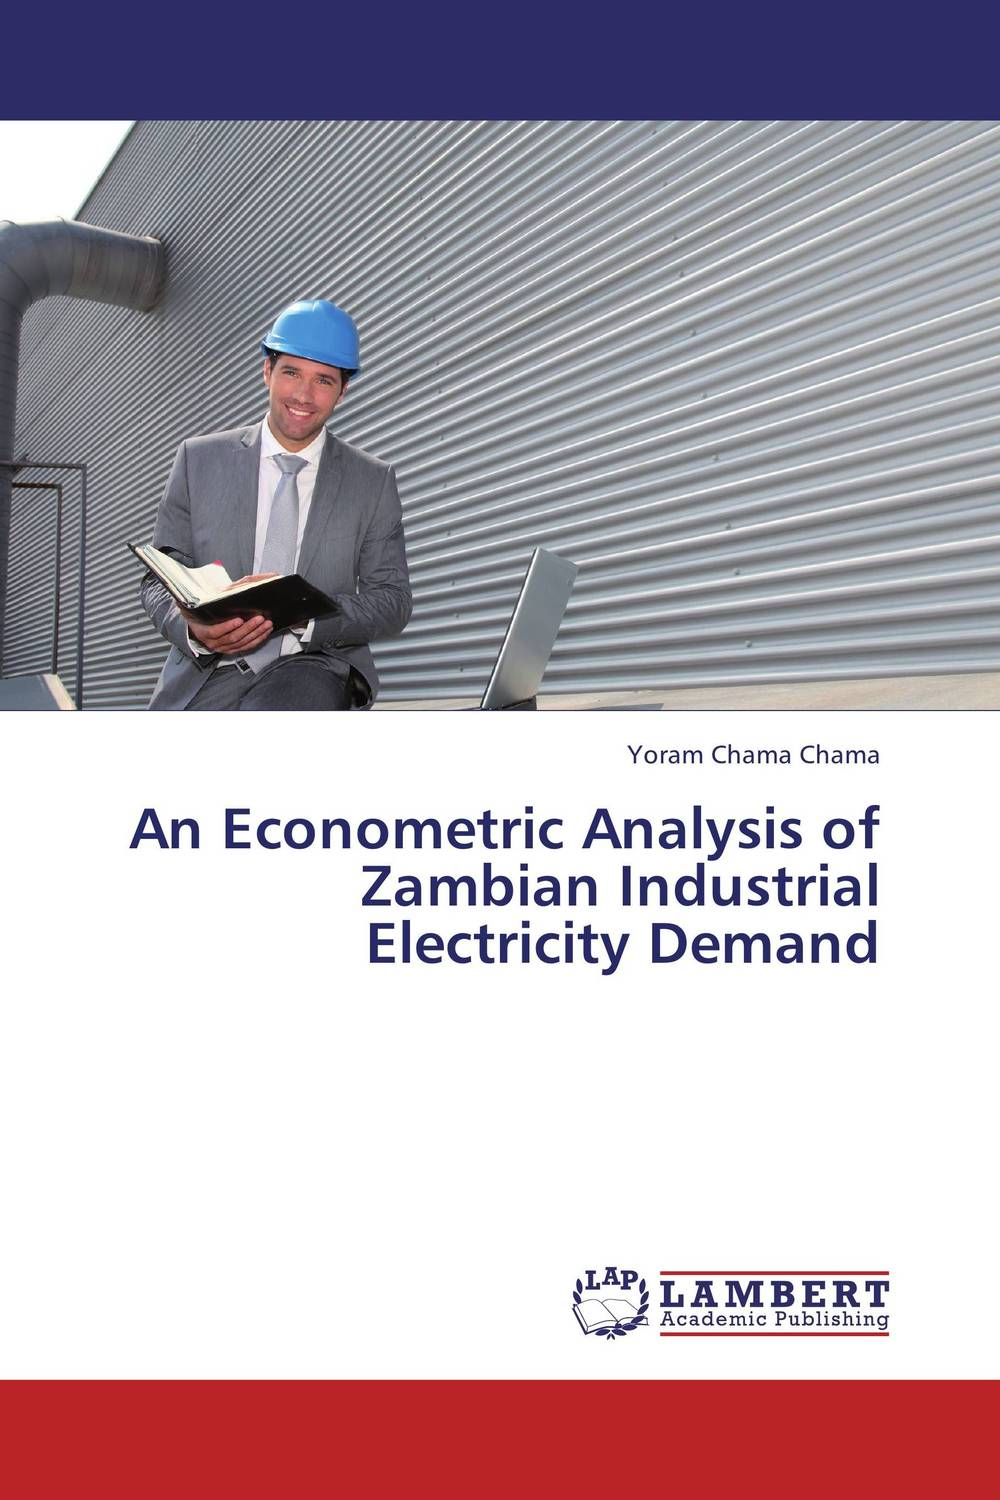 An Econometric Analysis of Zambian Industrial Electricity Demand psychiatric disorders in postpartum period